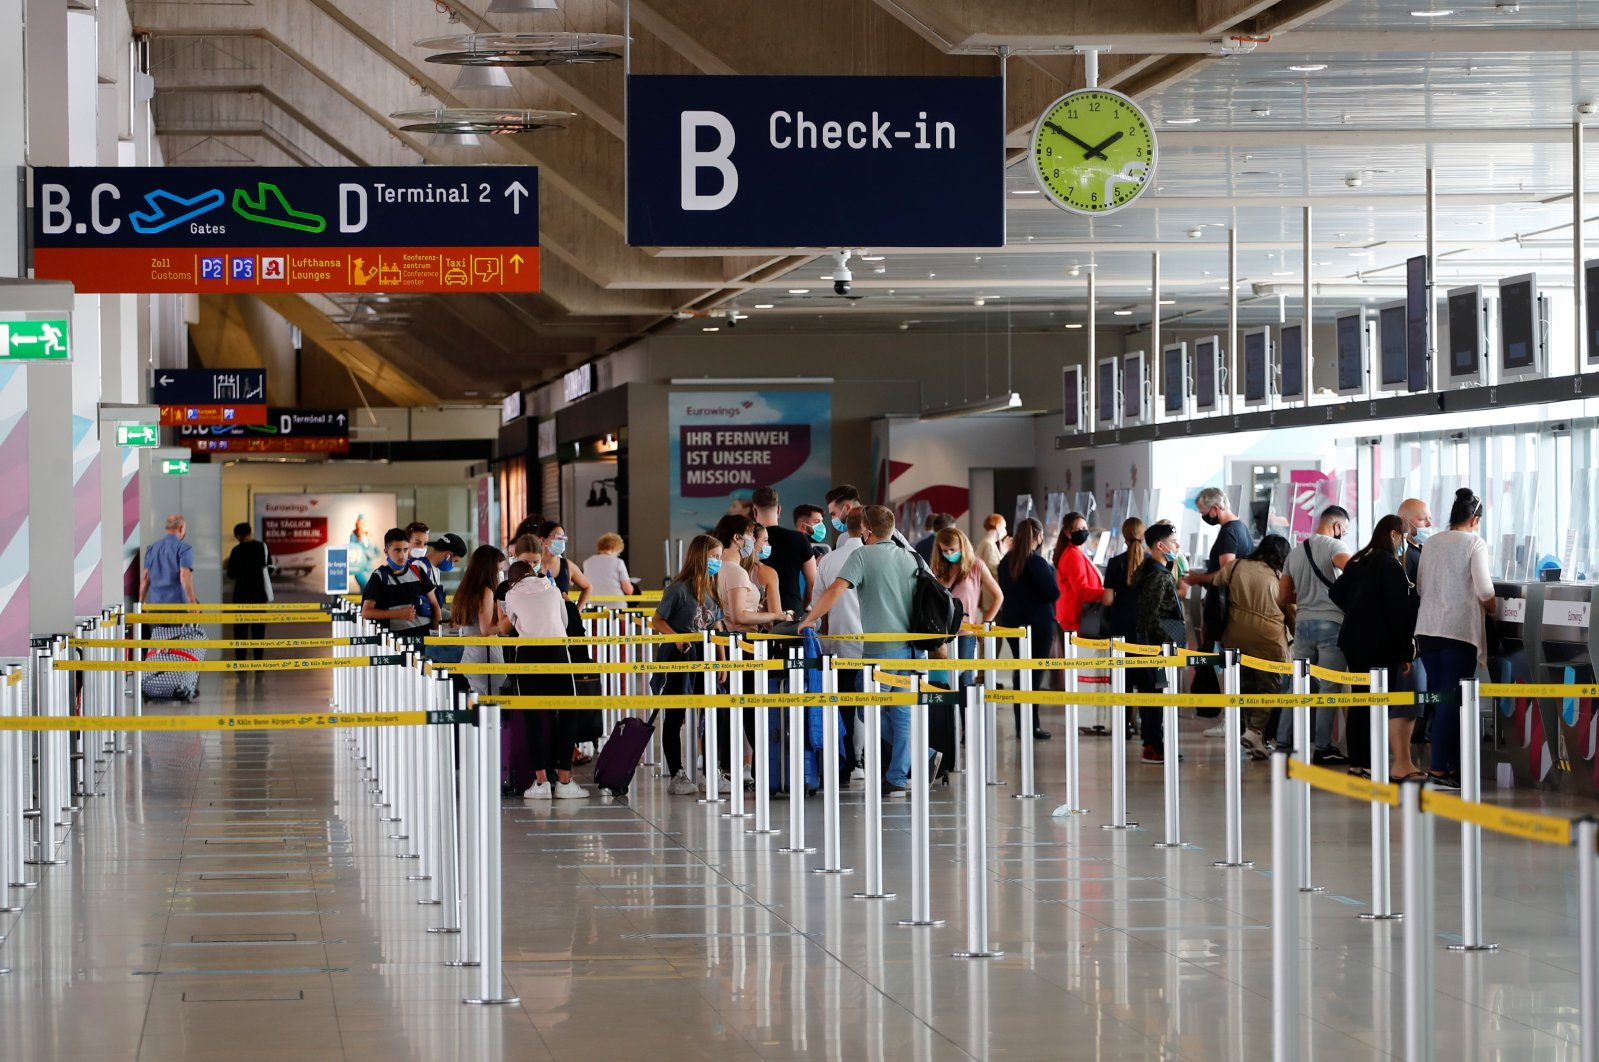 Travelers line up at a check-in counter of the Cologne-Bonn Airport, as the spread of the coronavirus disease (COVID-19) continues, in Cologne, Germany, July 28, 2020. (Reuters Photo)